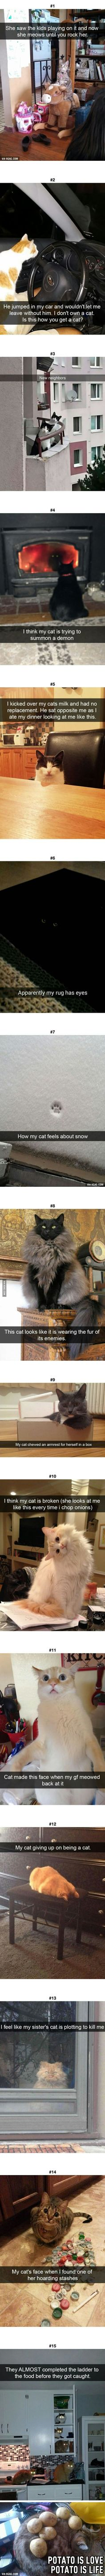 Luckily, my cats aren't like this!